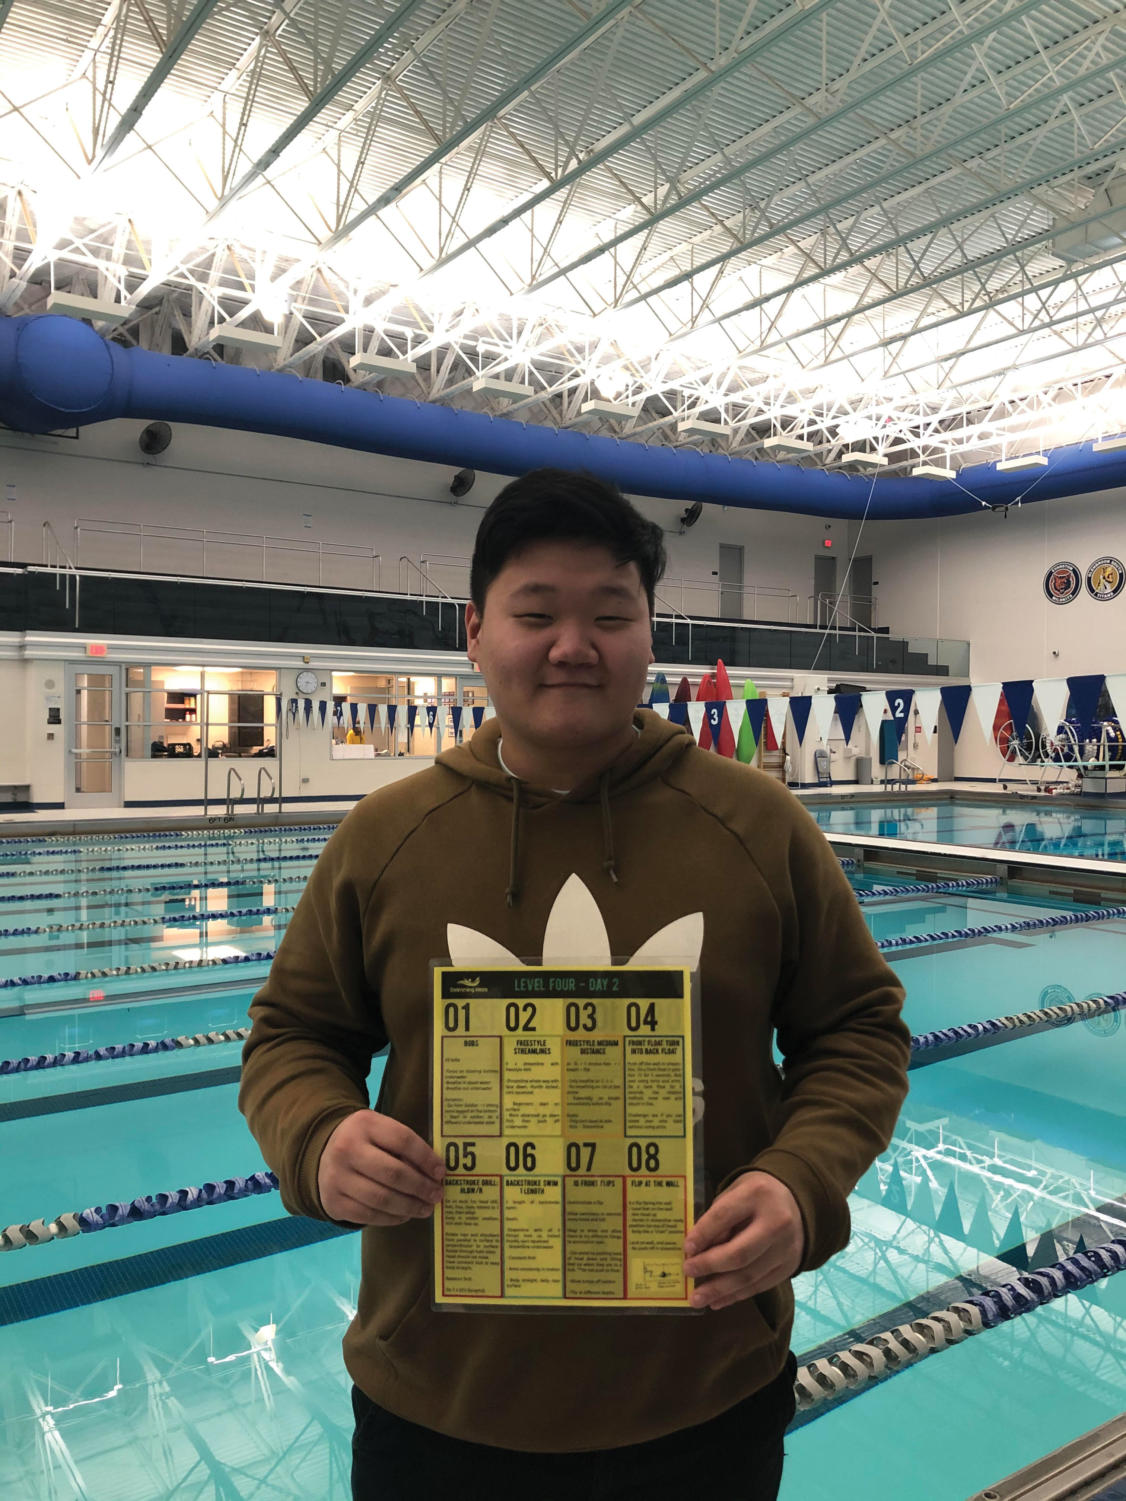 Jun poses in front of the school's pool.